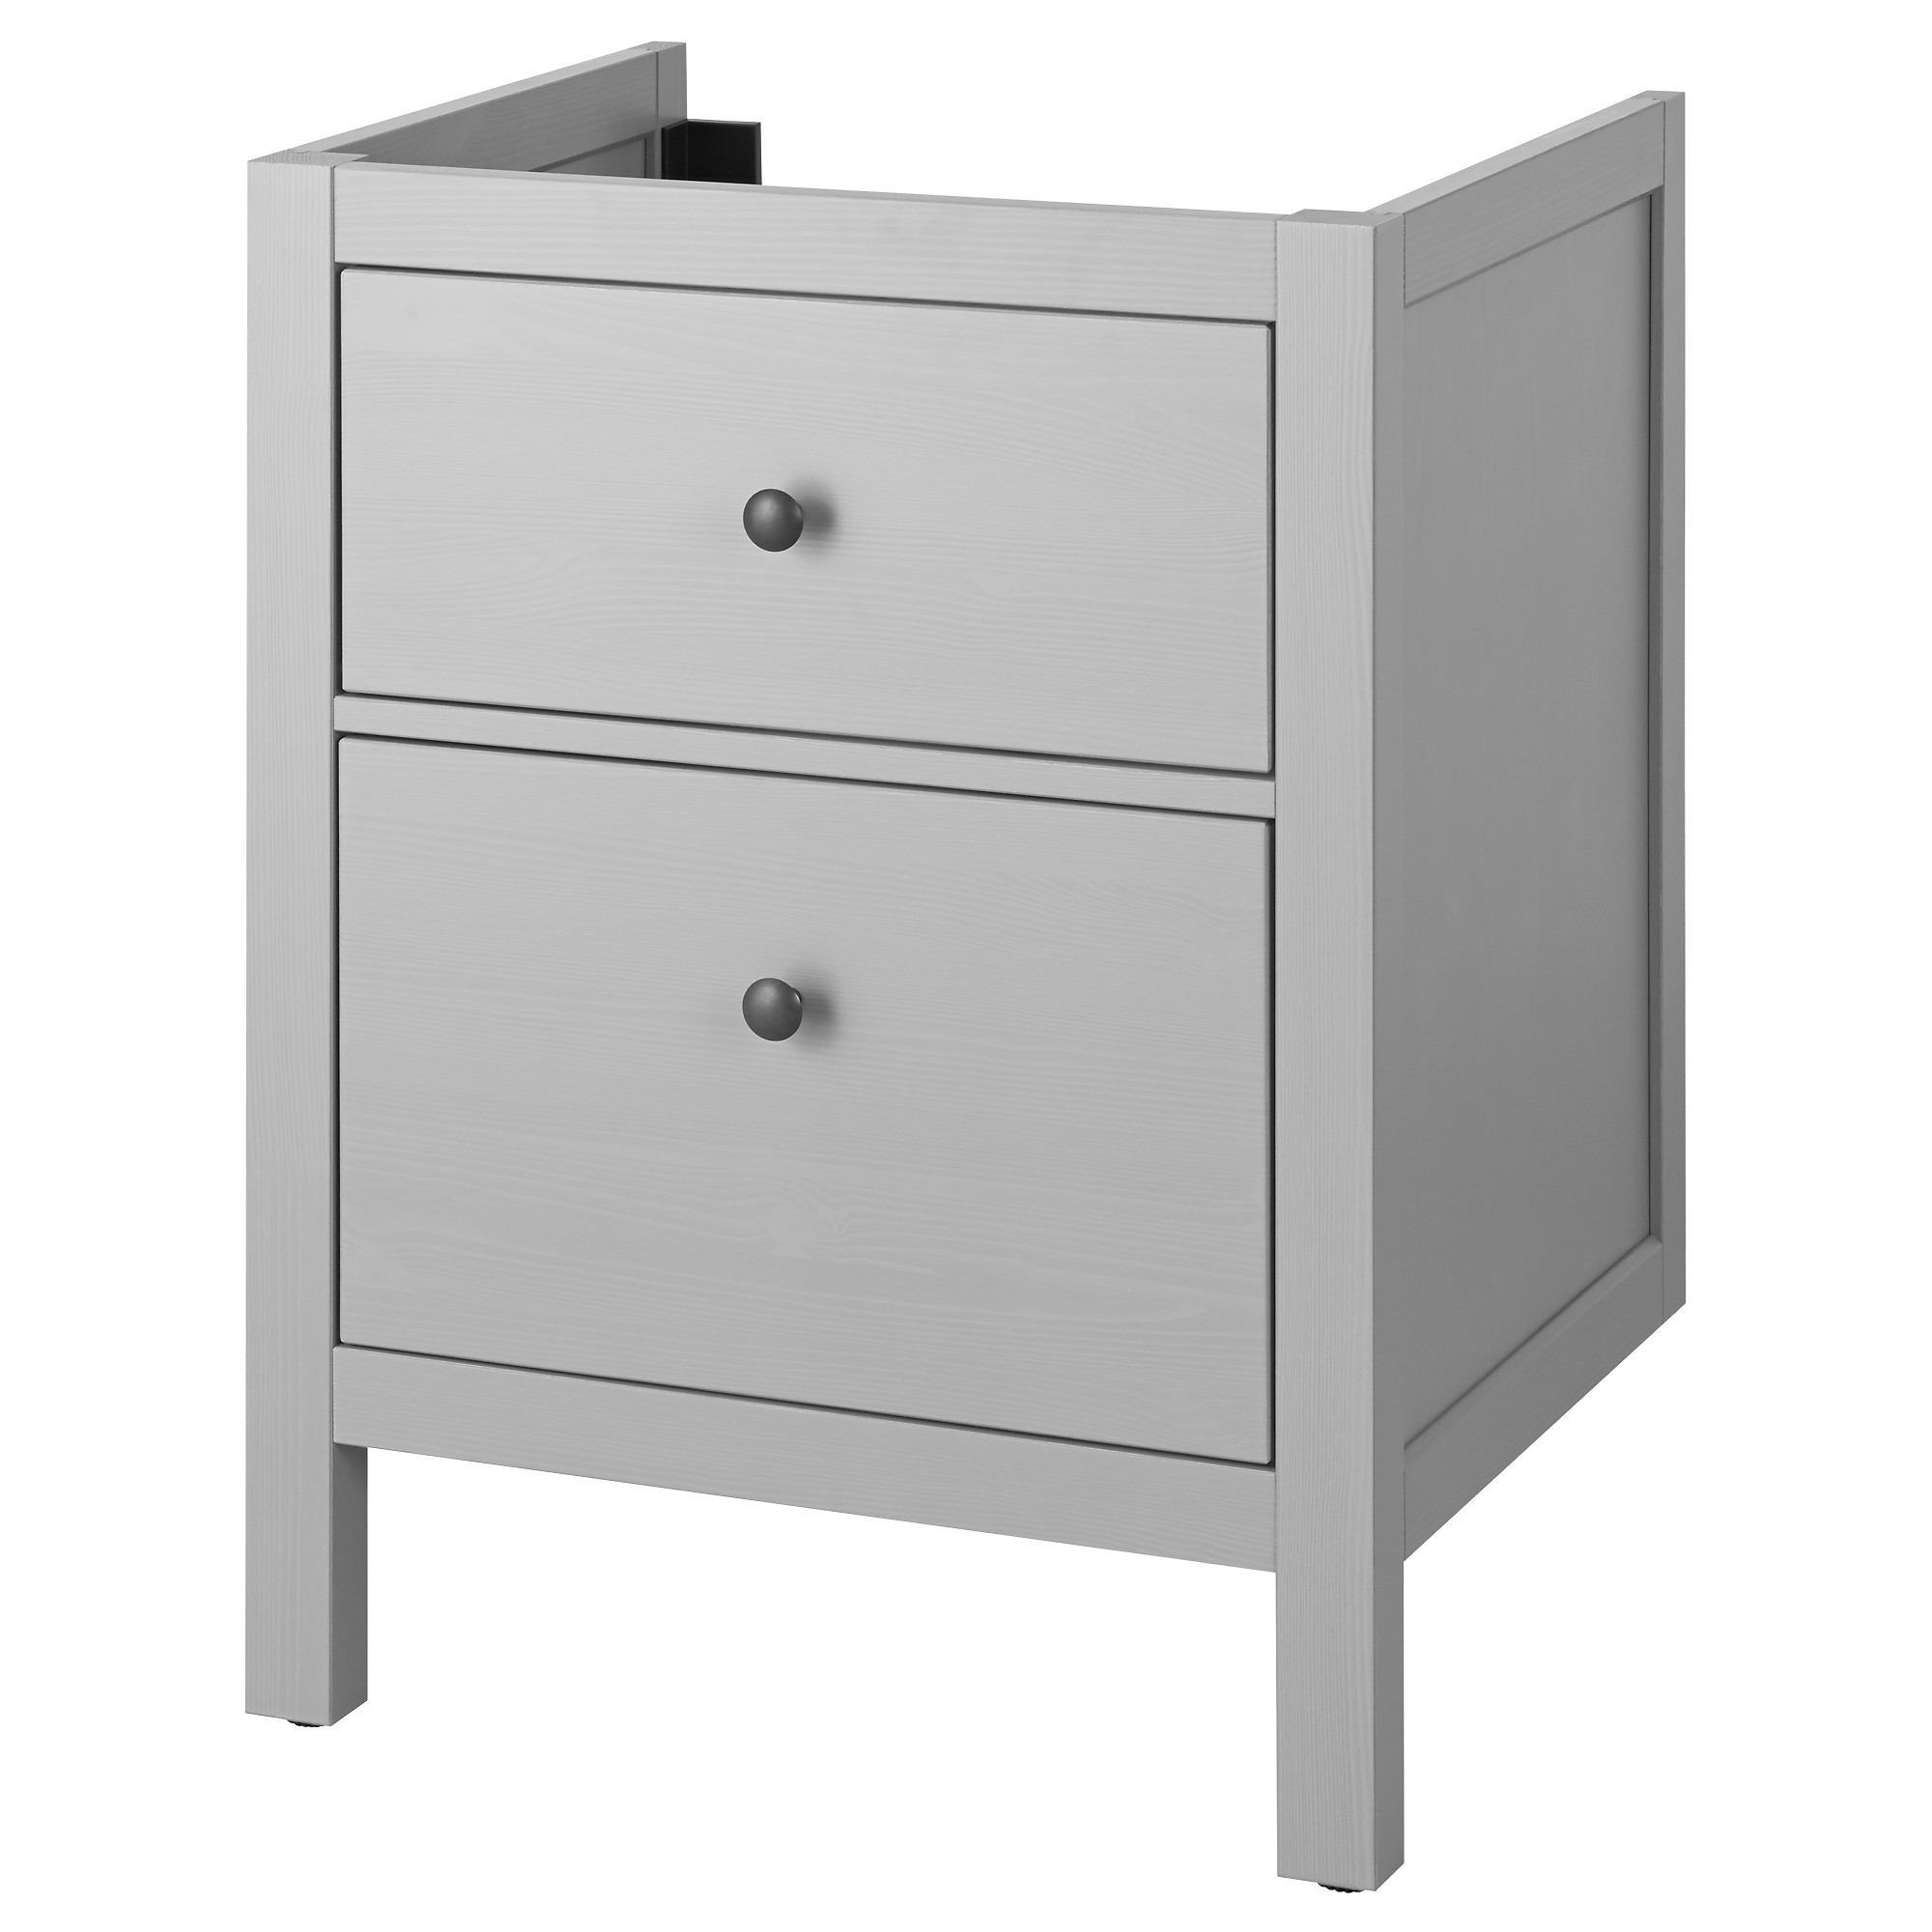 hemnes sink cabinet with 2 drawers gray 60x47x83 cm ikea